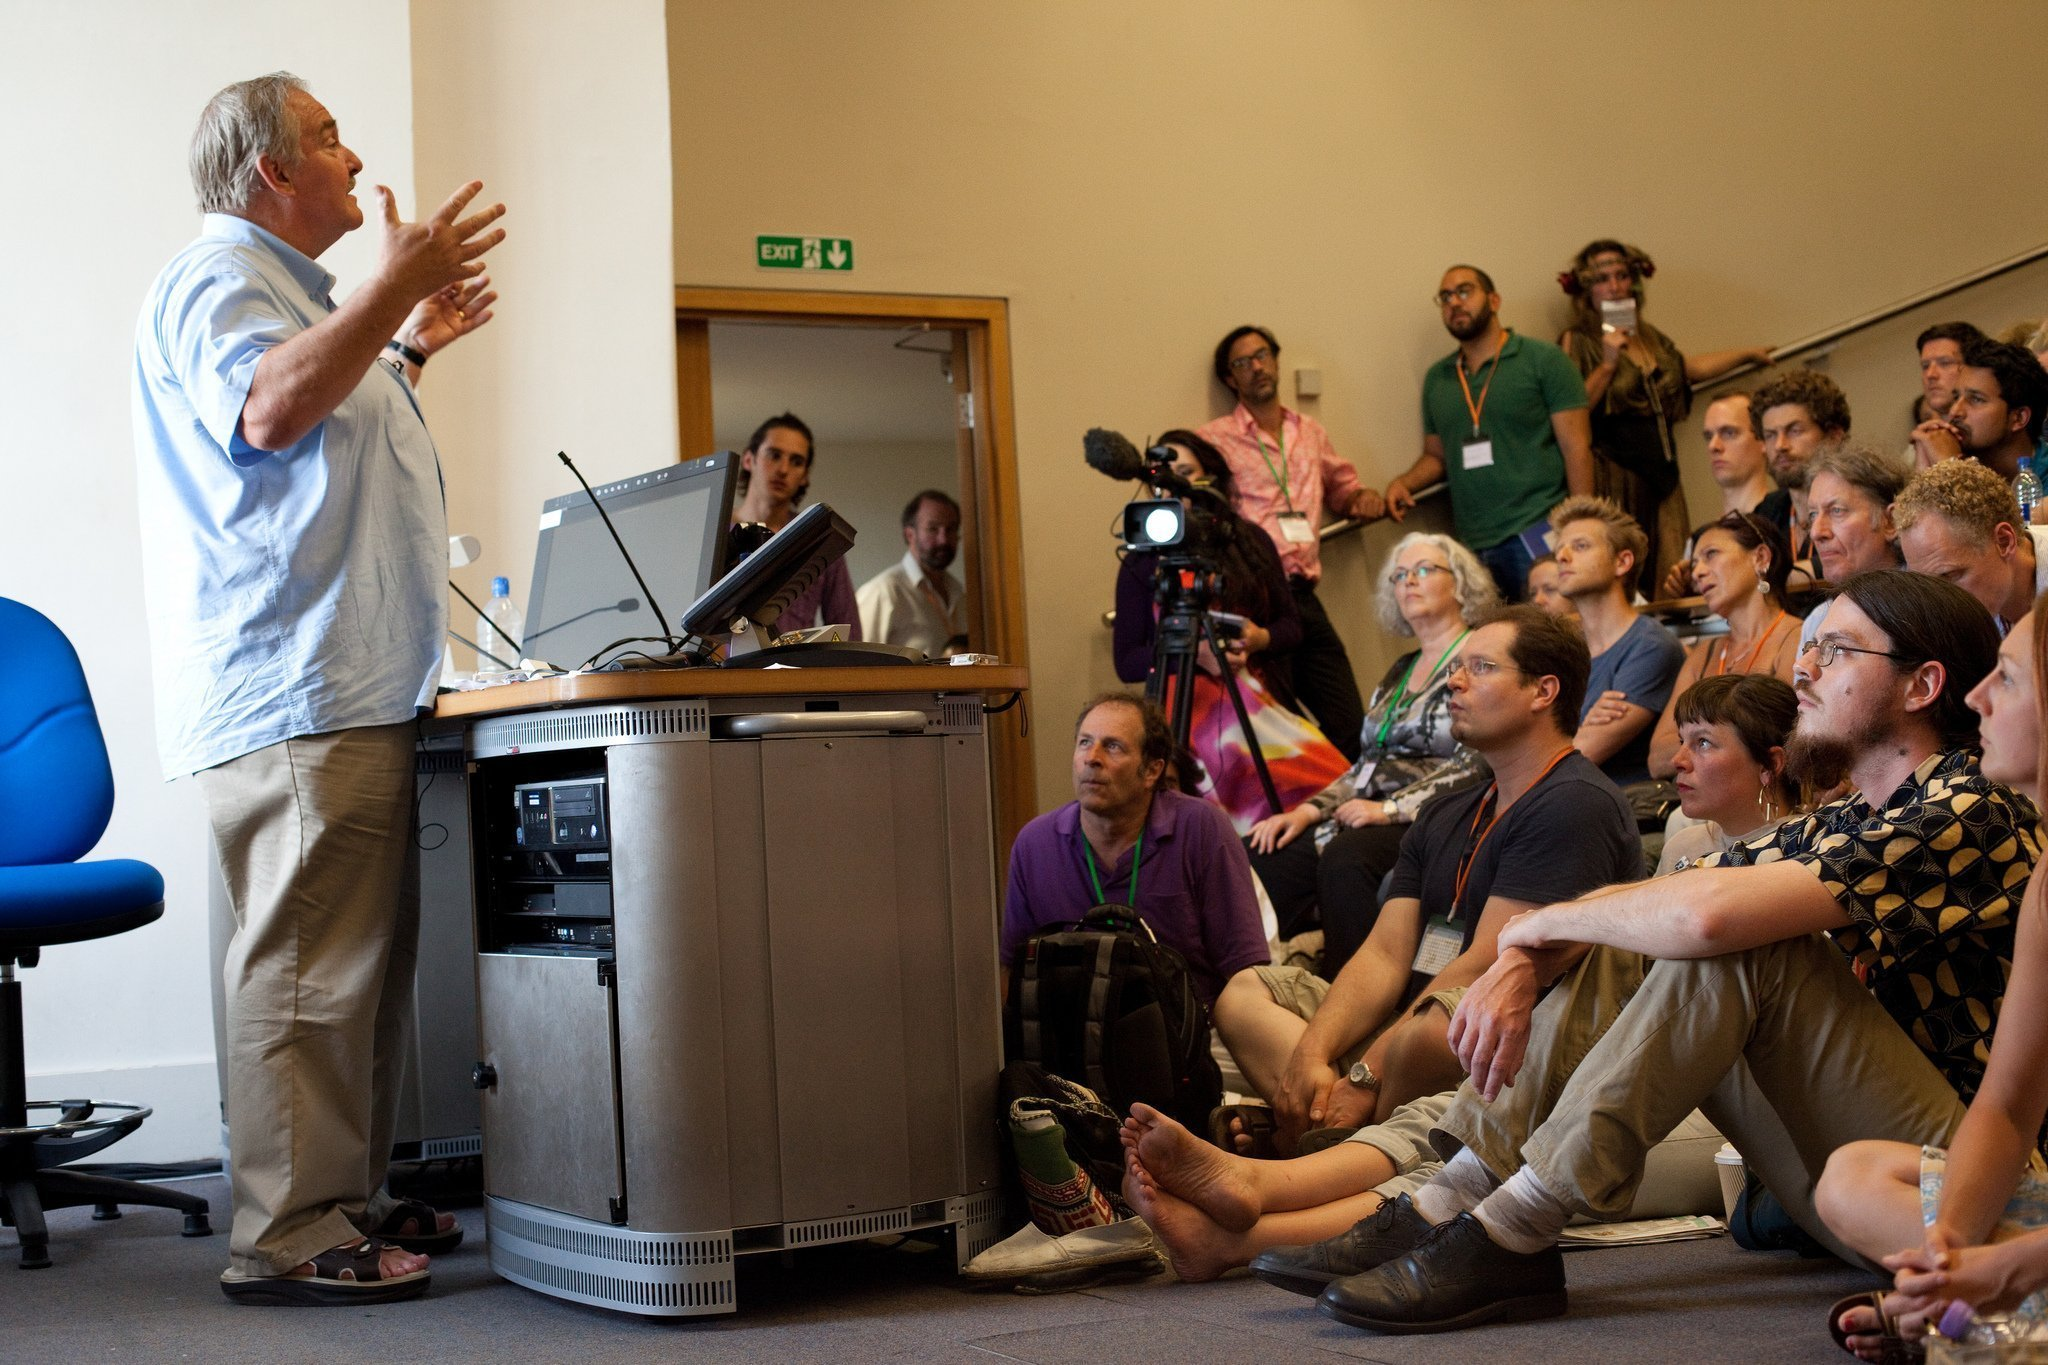 Professor David Nutt addresses delegates at Breaking Convention: a multidisciplinary conference on psychedelic consciousness, featuring more than 130 presenters from around the world. Photo Credit: Jonathan Greet 2015